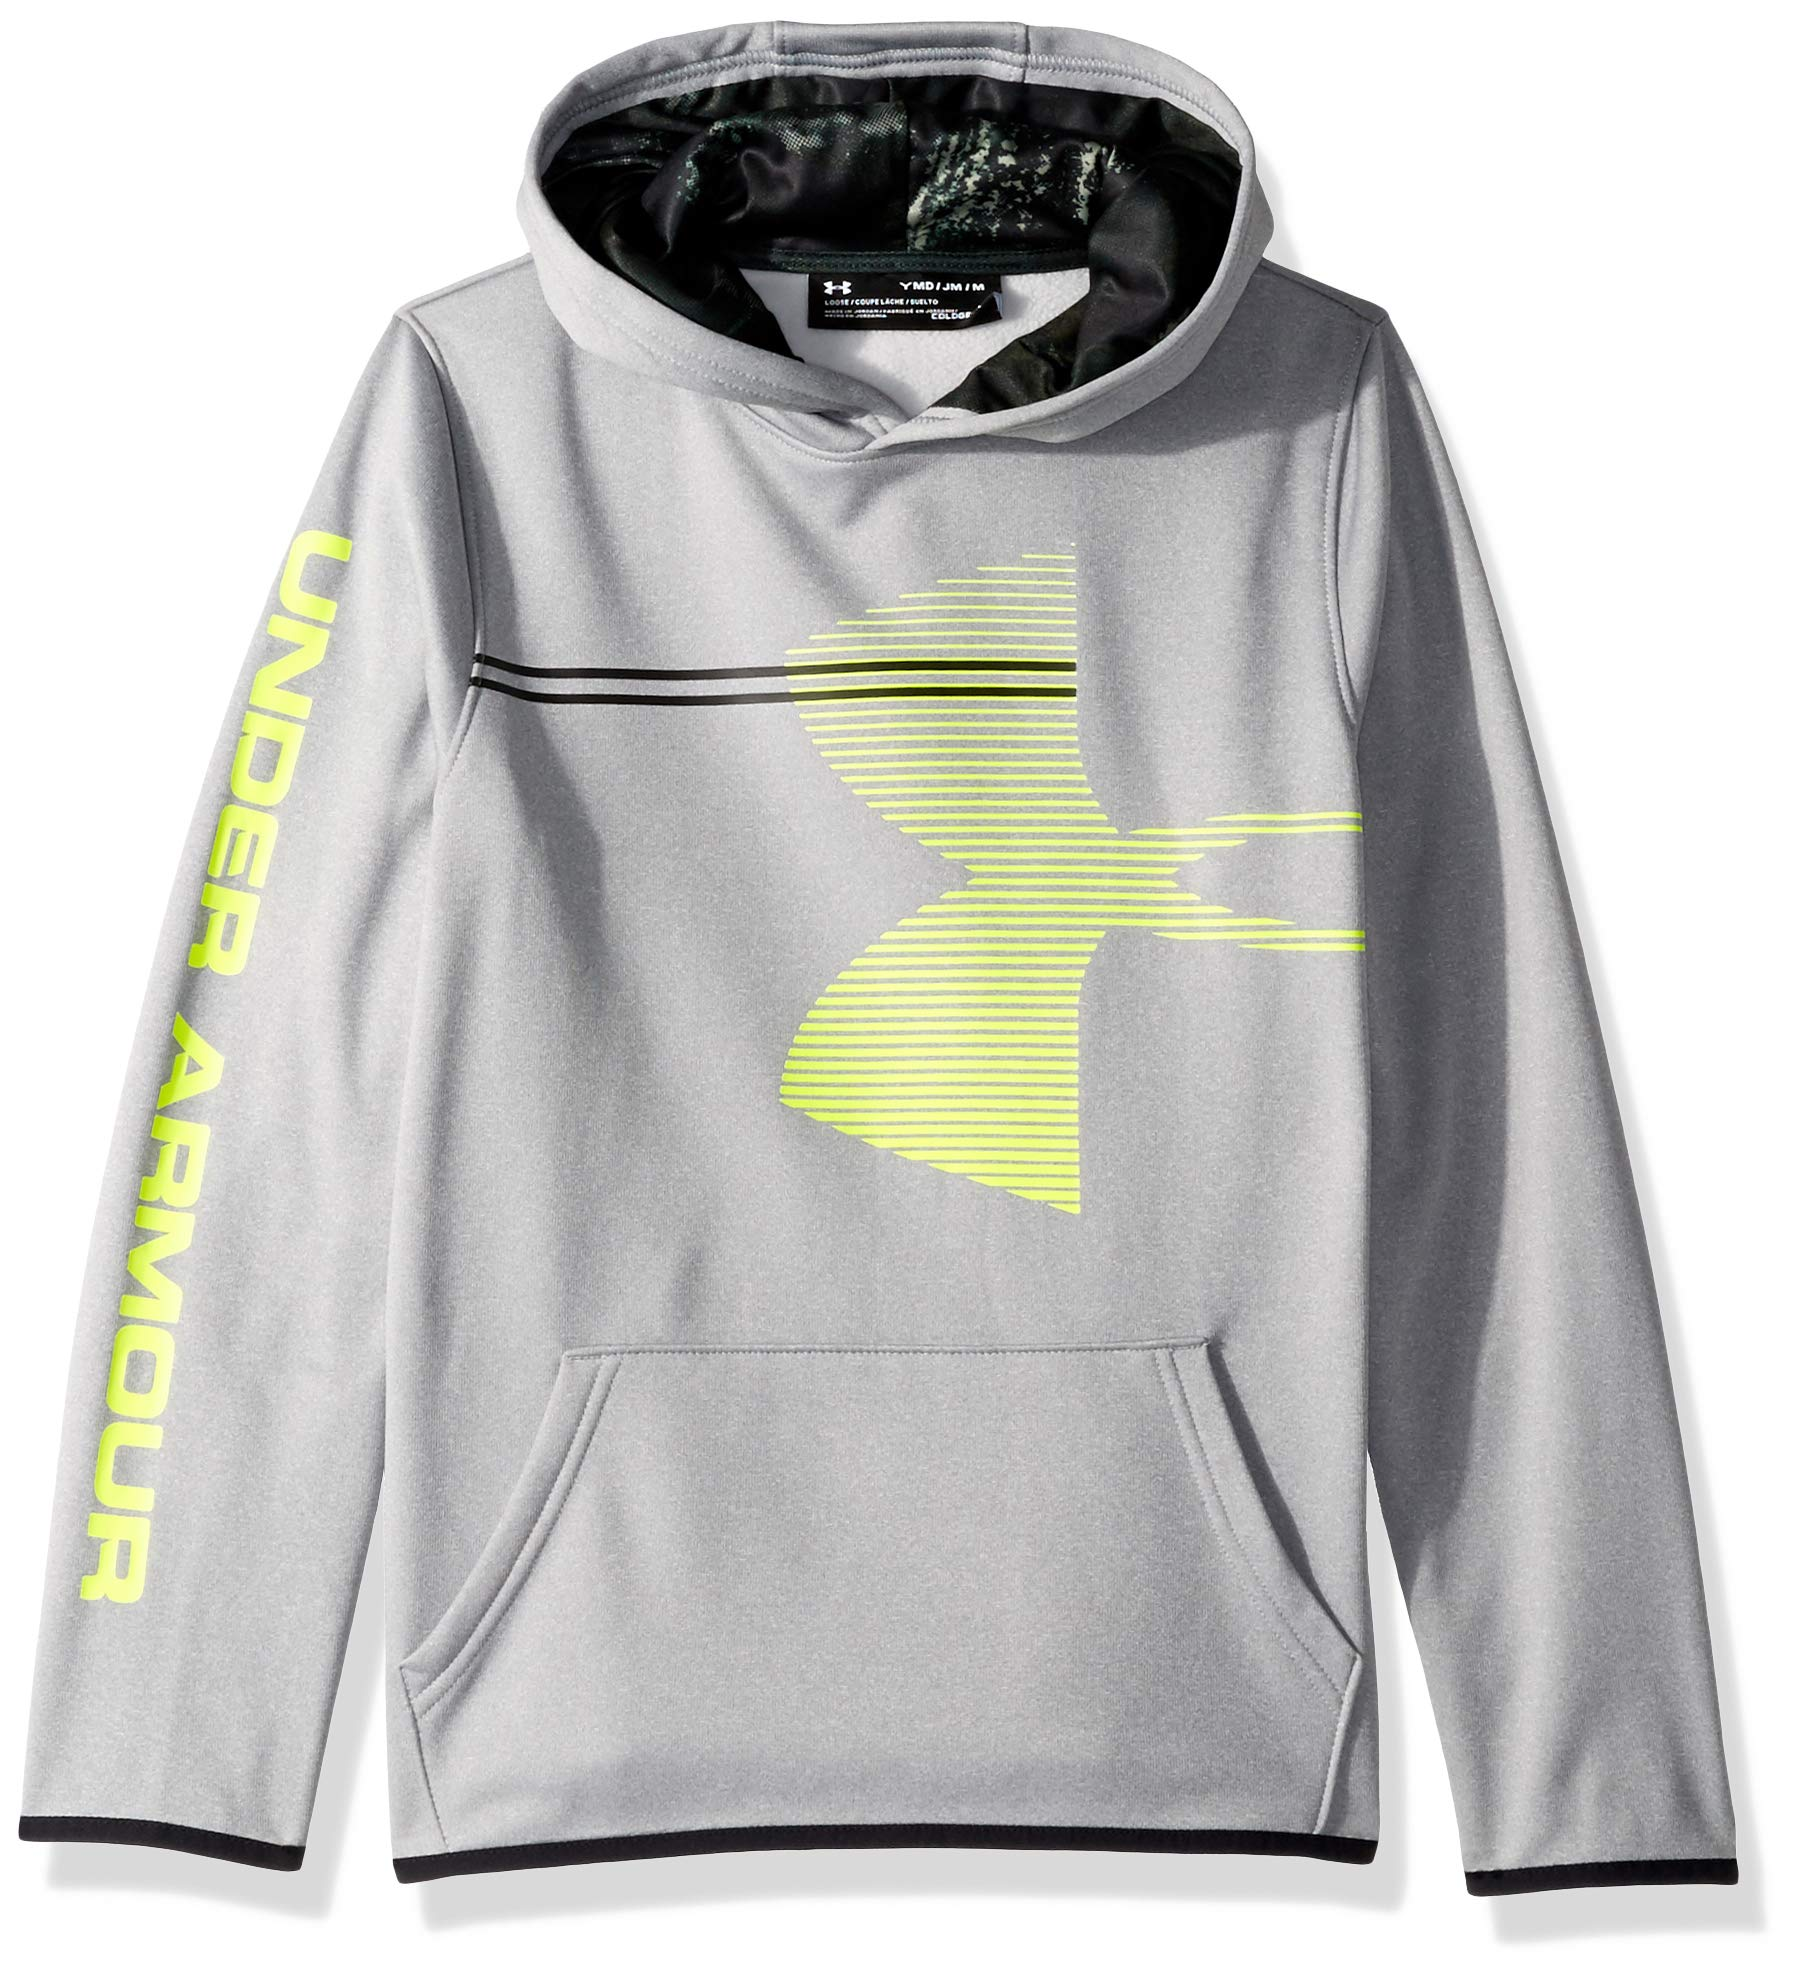 Under Armour Boys' Armour Fleece Hoodie, Steel Light Heather (035)/Black, Youth Small by Under Armour